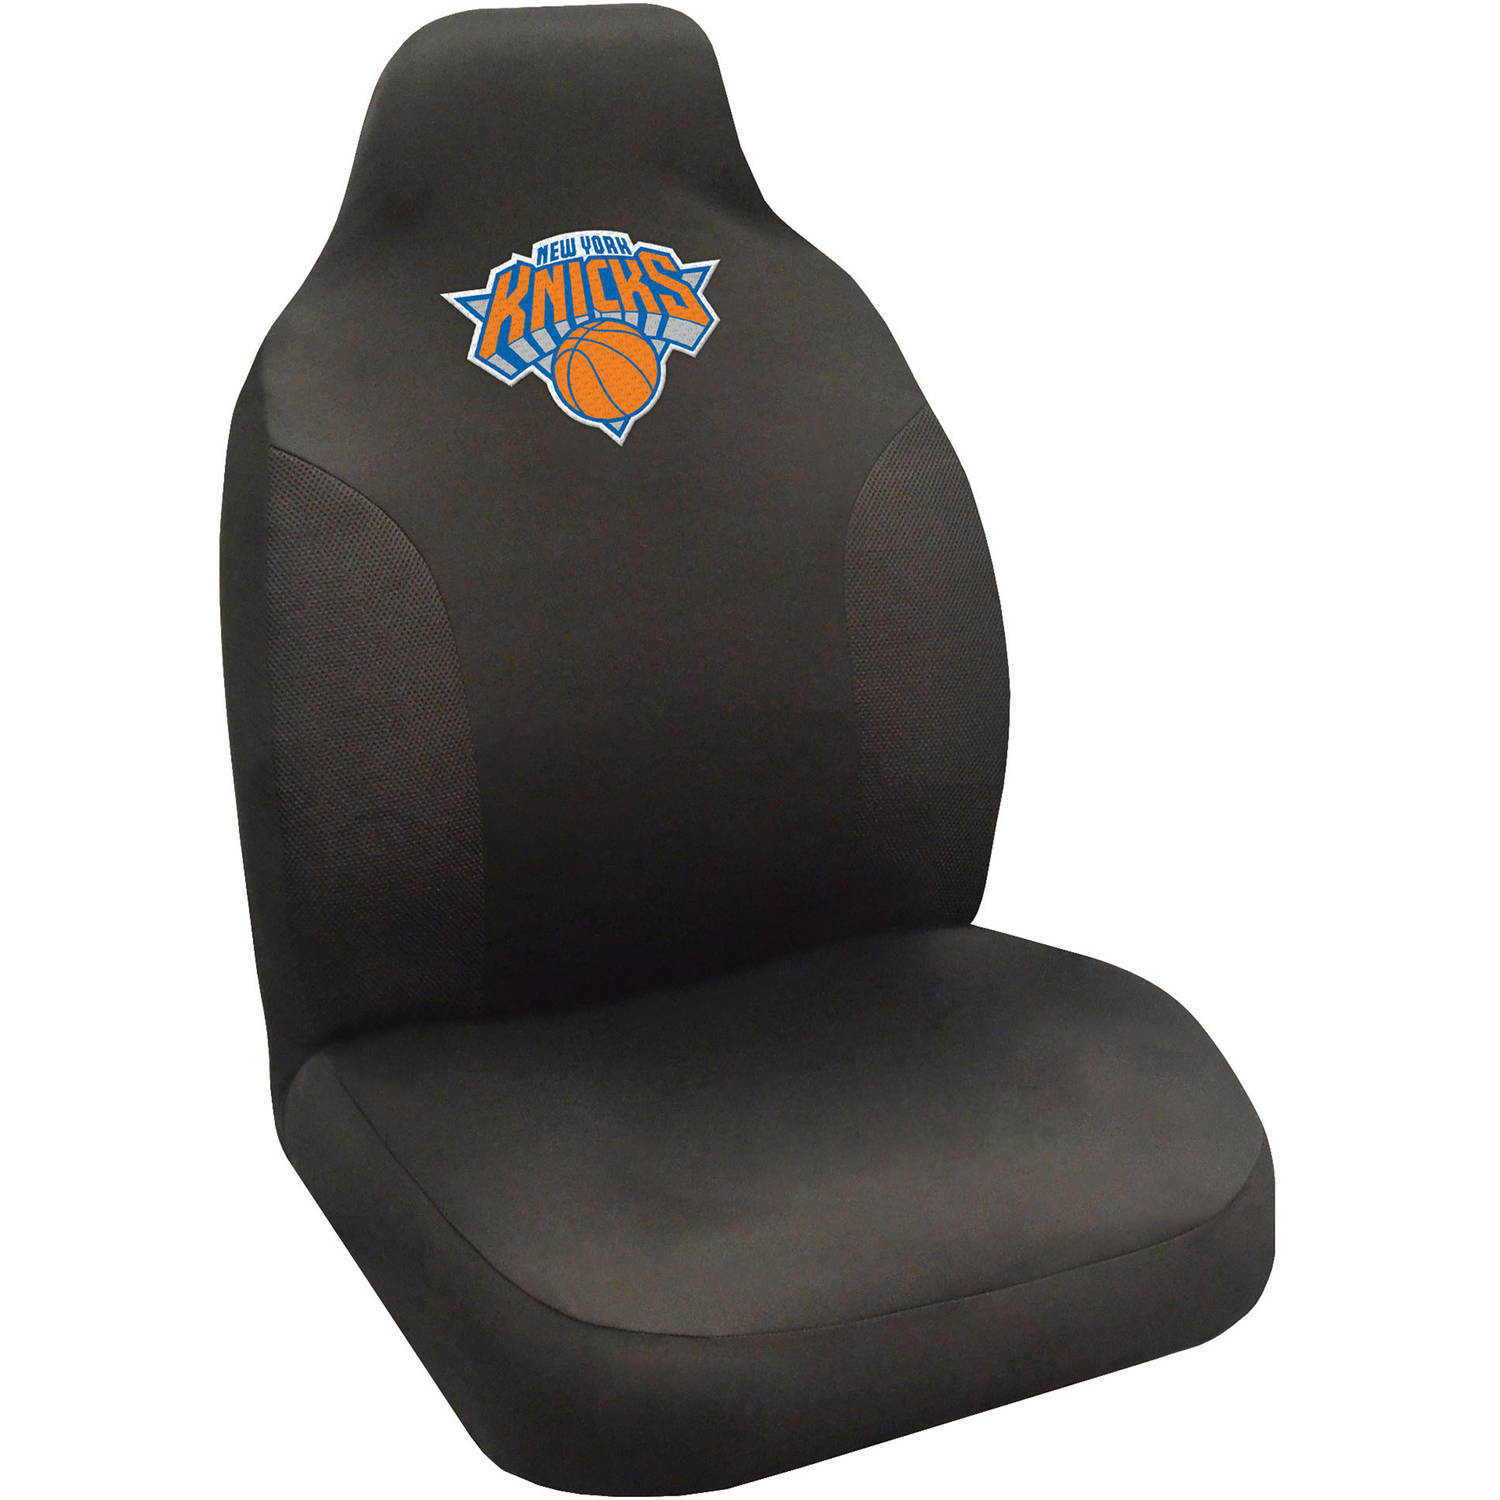 NBA New York Knicks Seat Covers